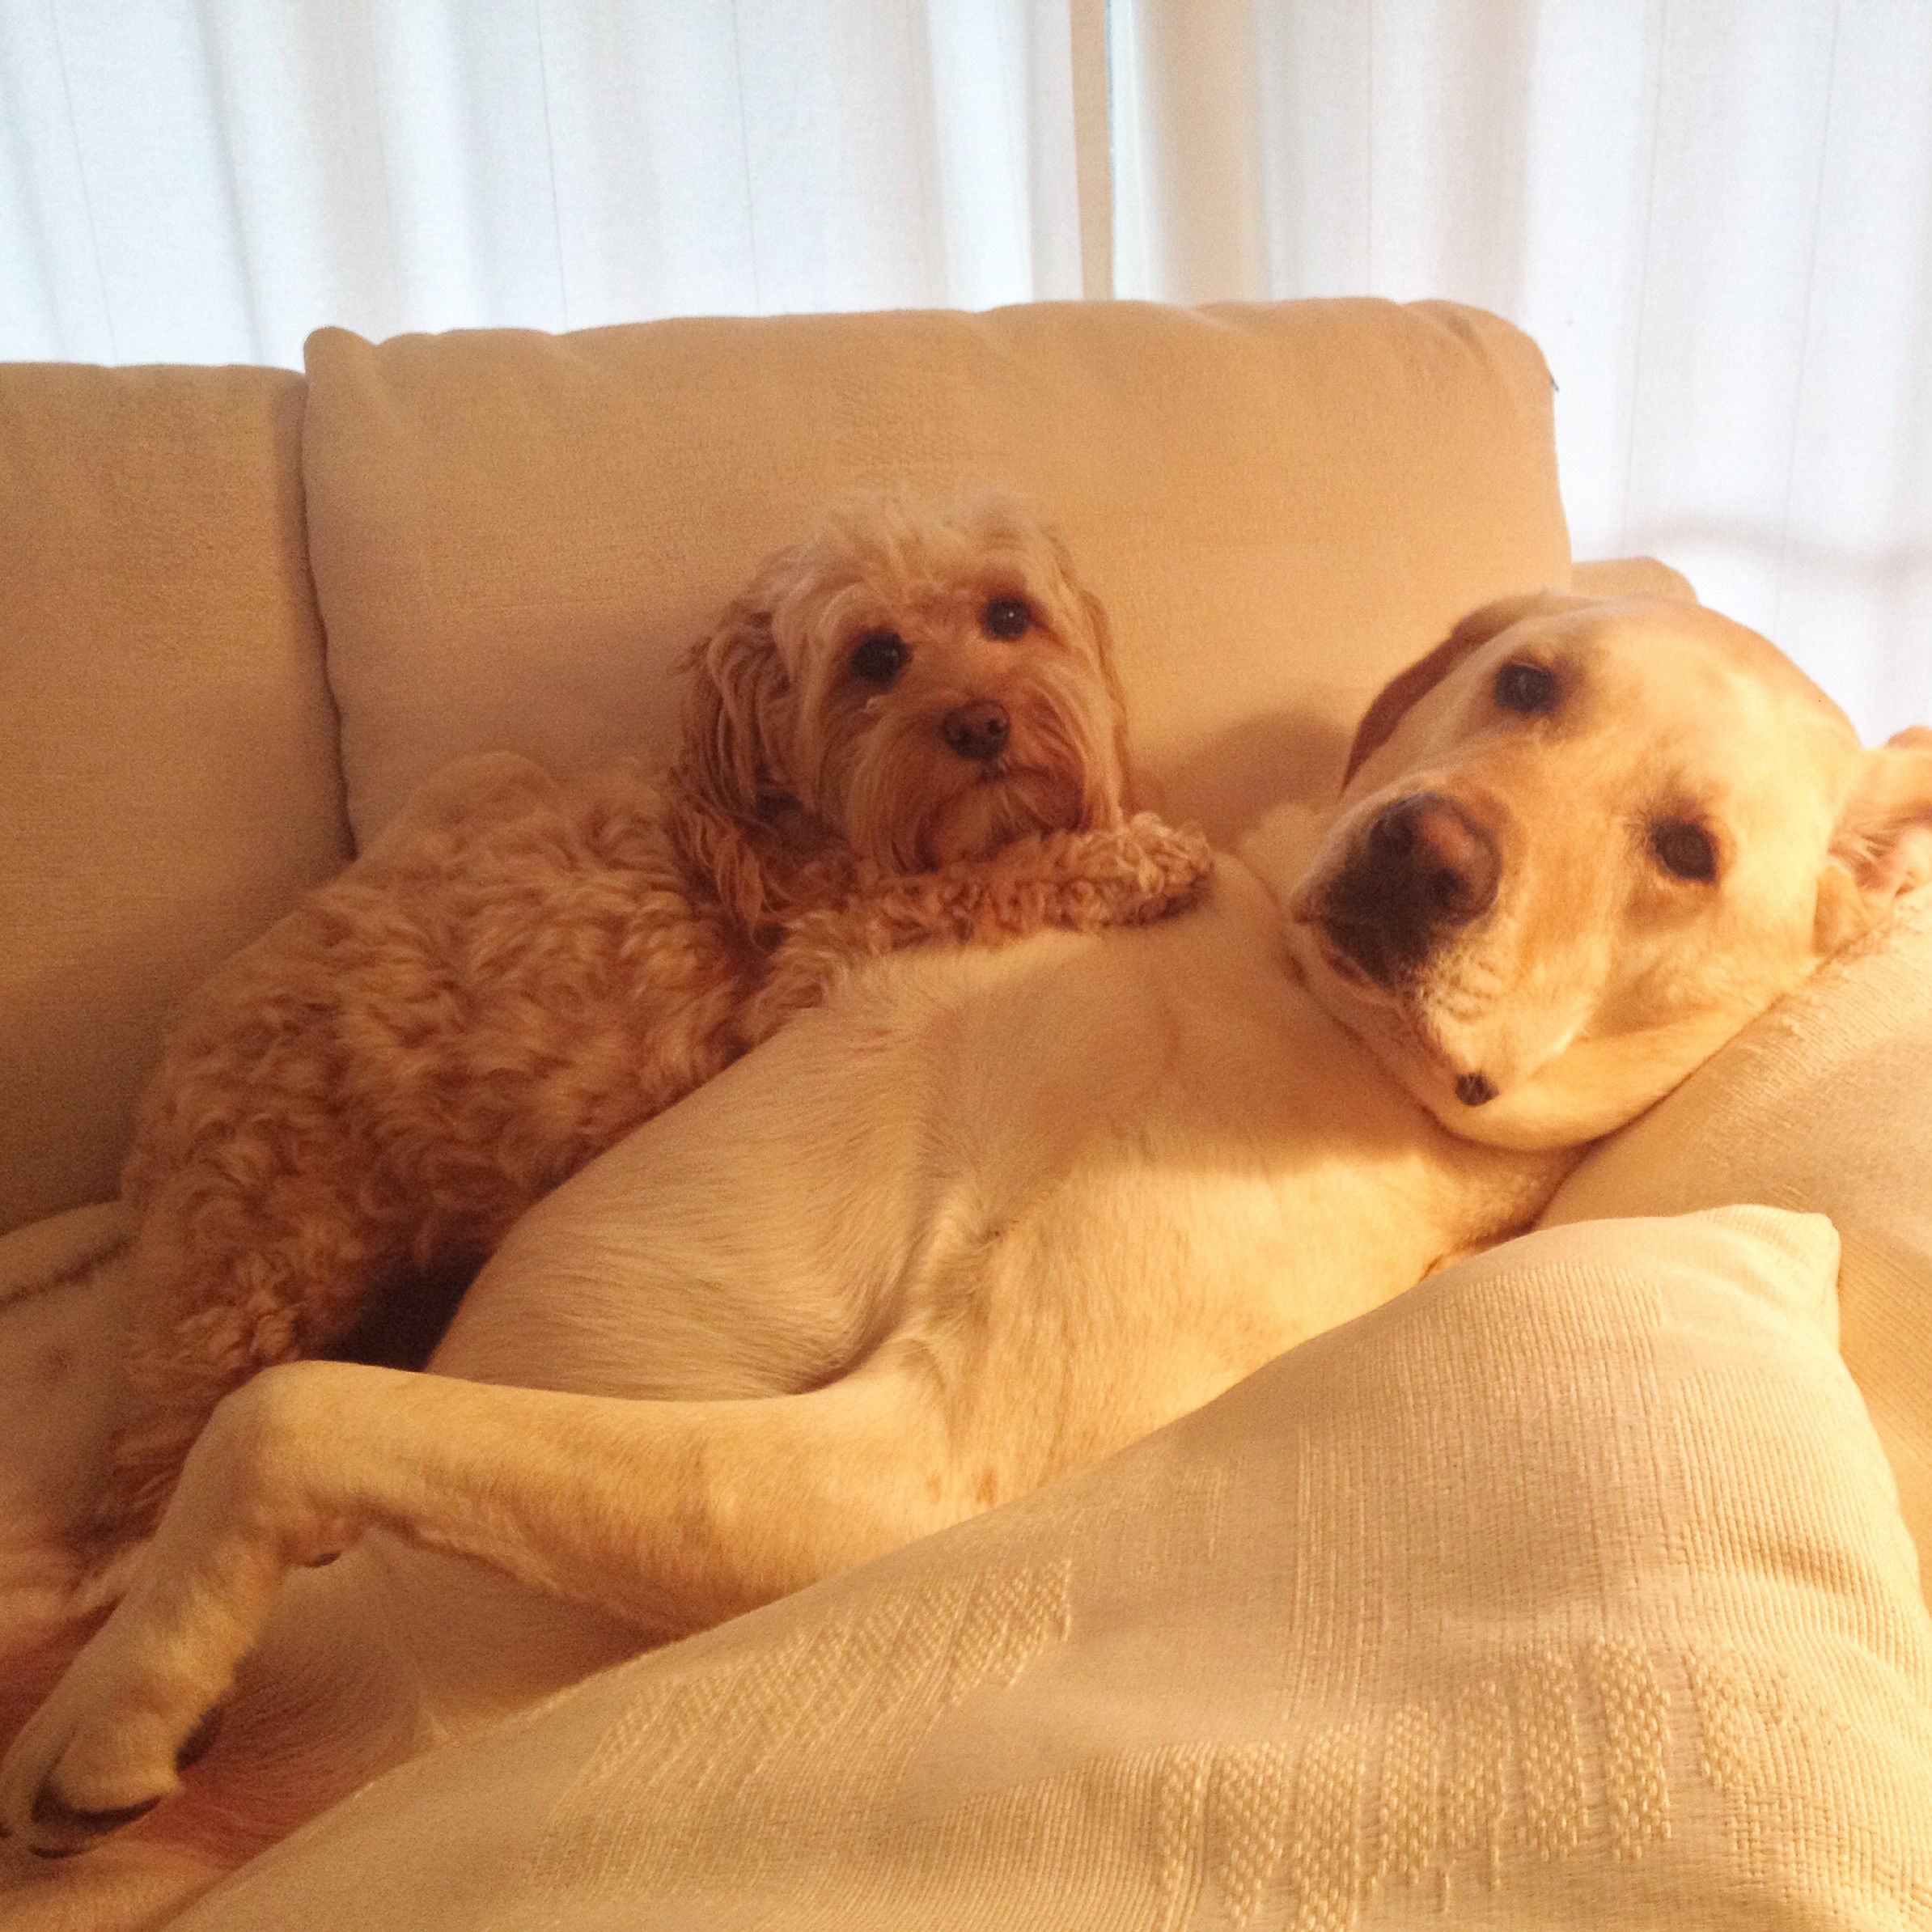 I Want To Cuddle With You Quotes: Cuddling Dogs Quotes. QuotesGram